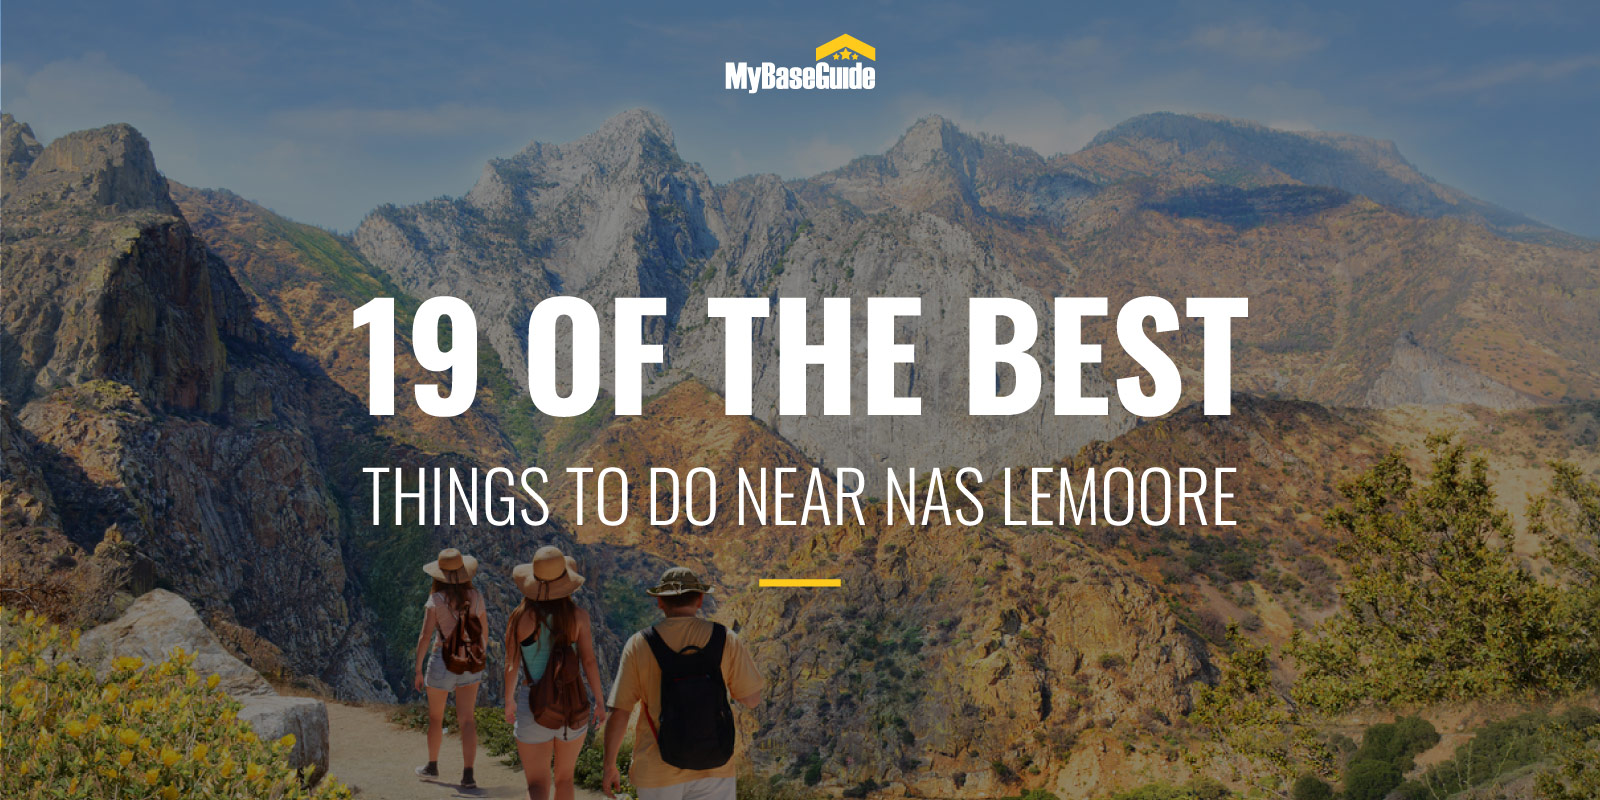 19 Of the Best Things to Do Around NAS Lemoore